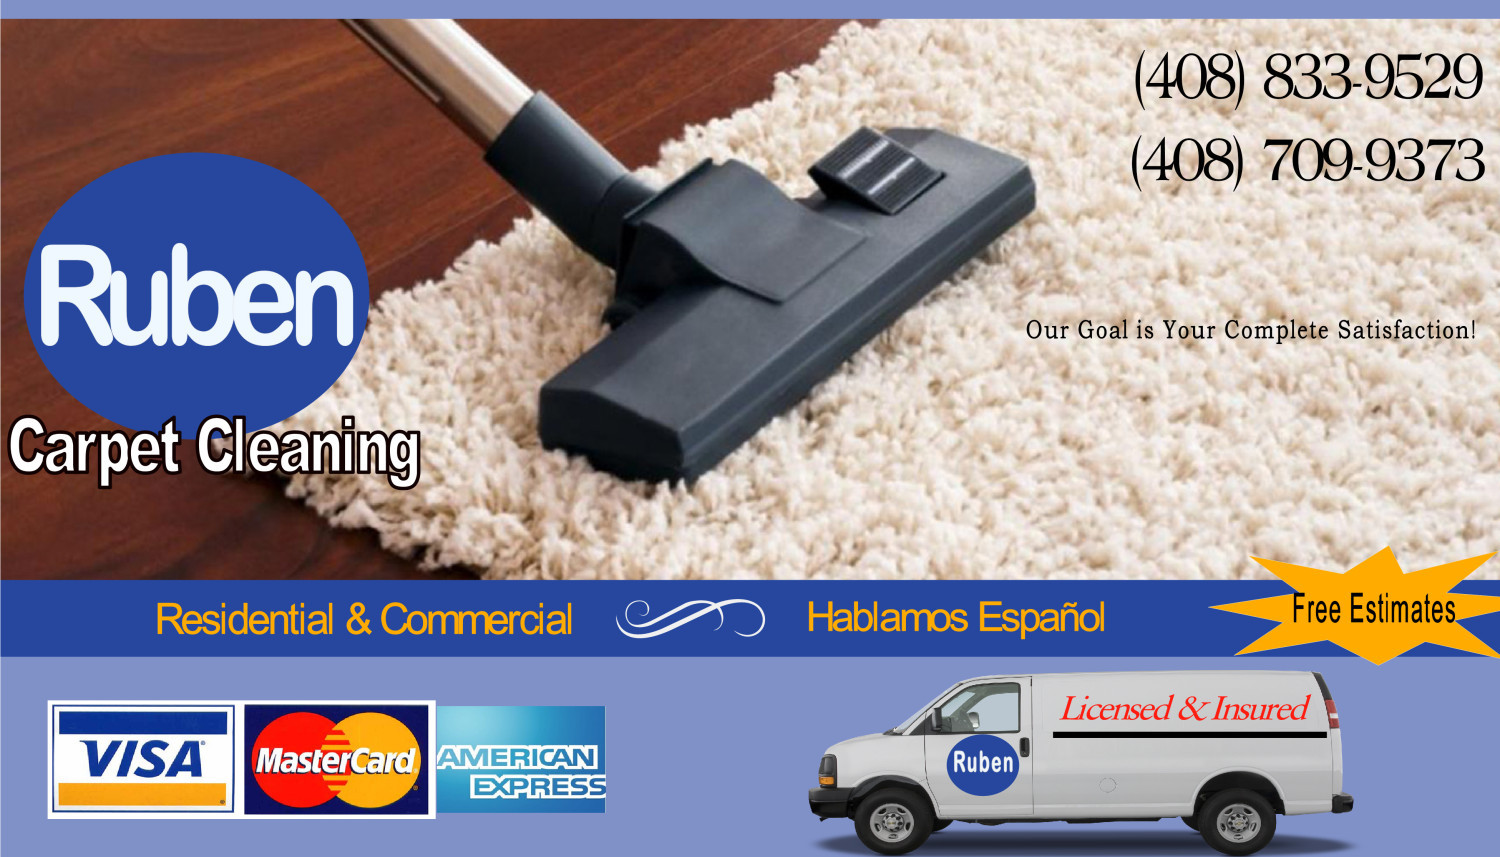 Ruben Carpet Cleaning